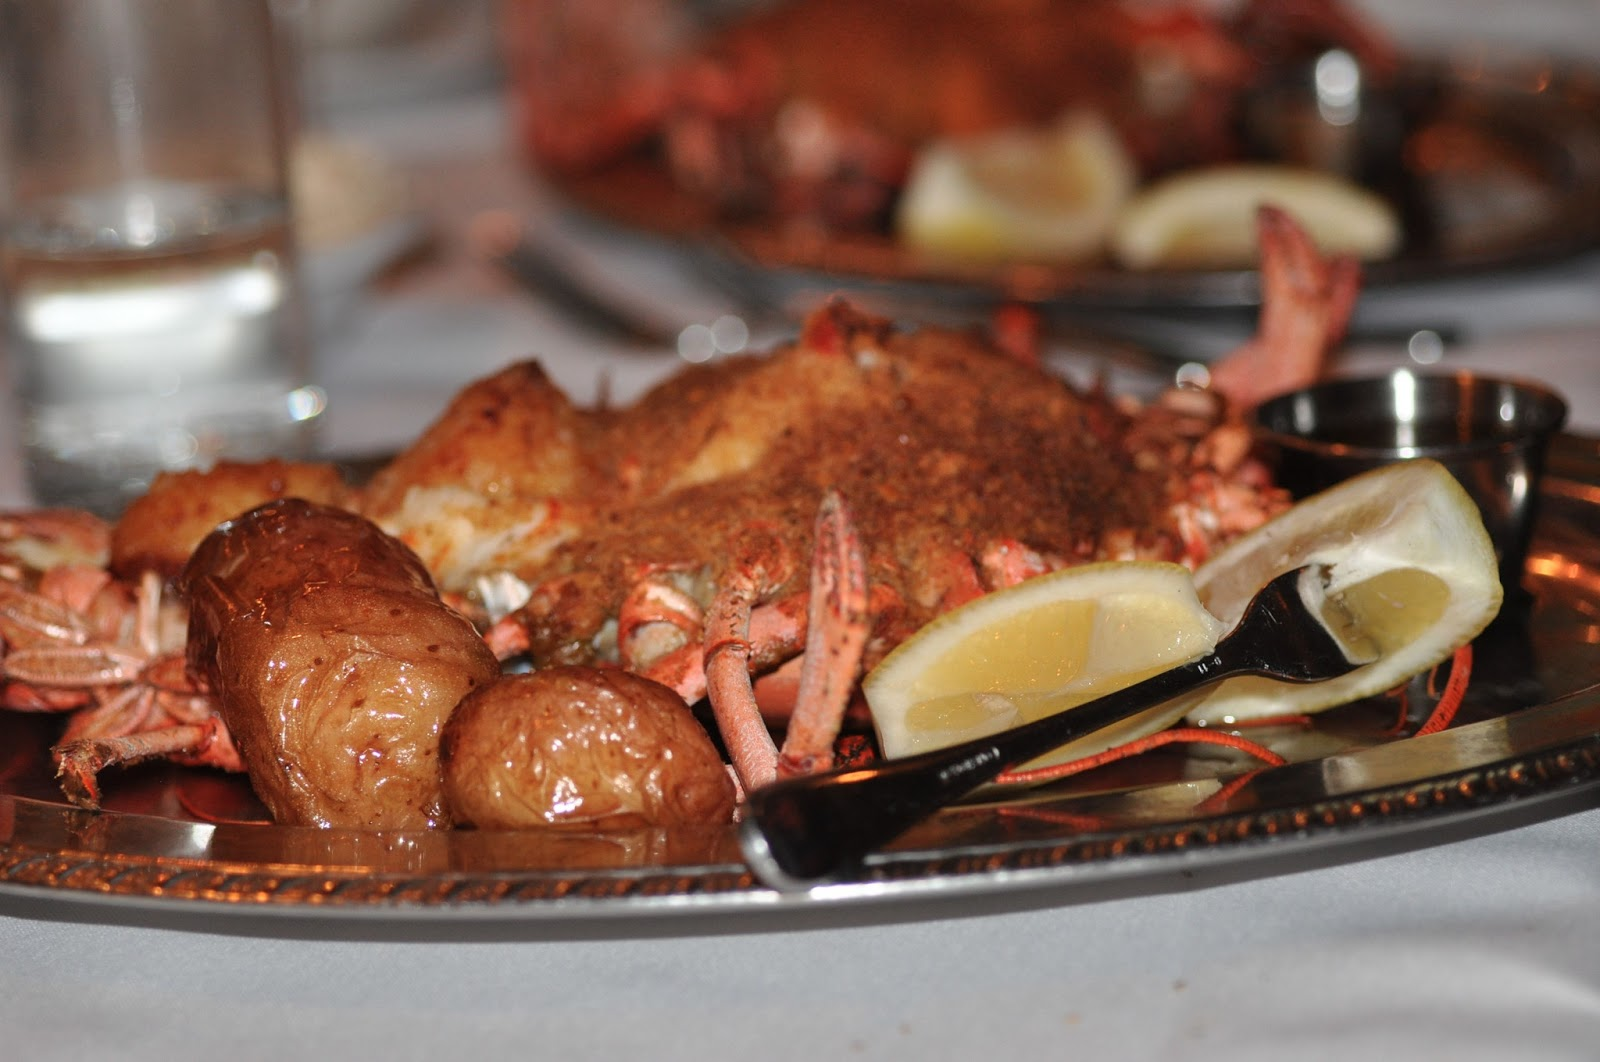 Baked Stuffed Lobster at The Lobster Pot Restaurant (Lexi Van de Walle ...